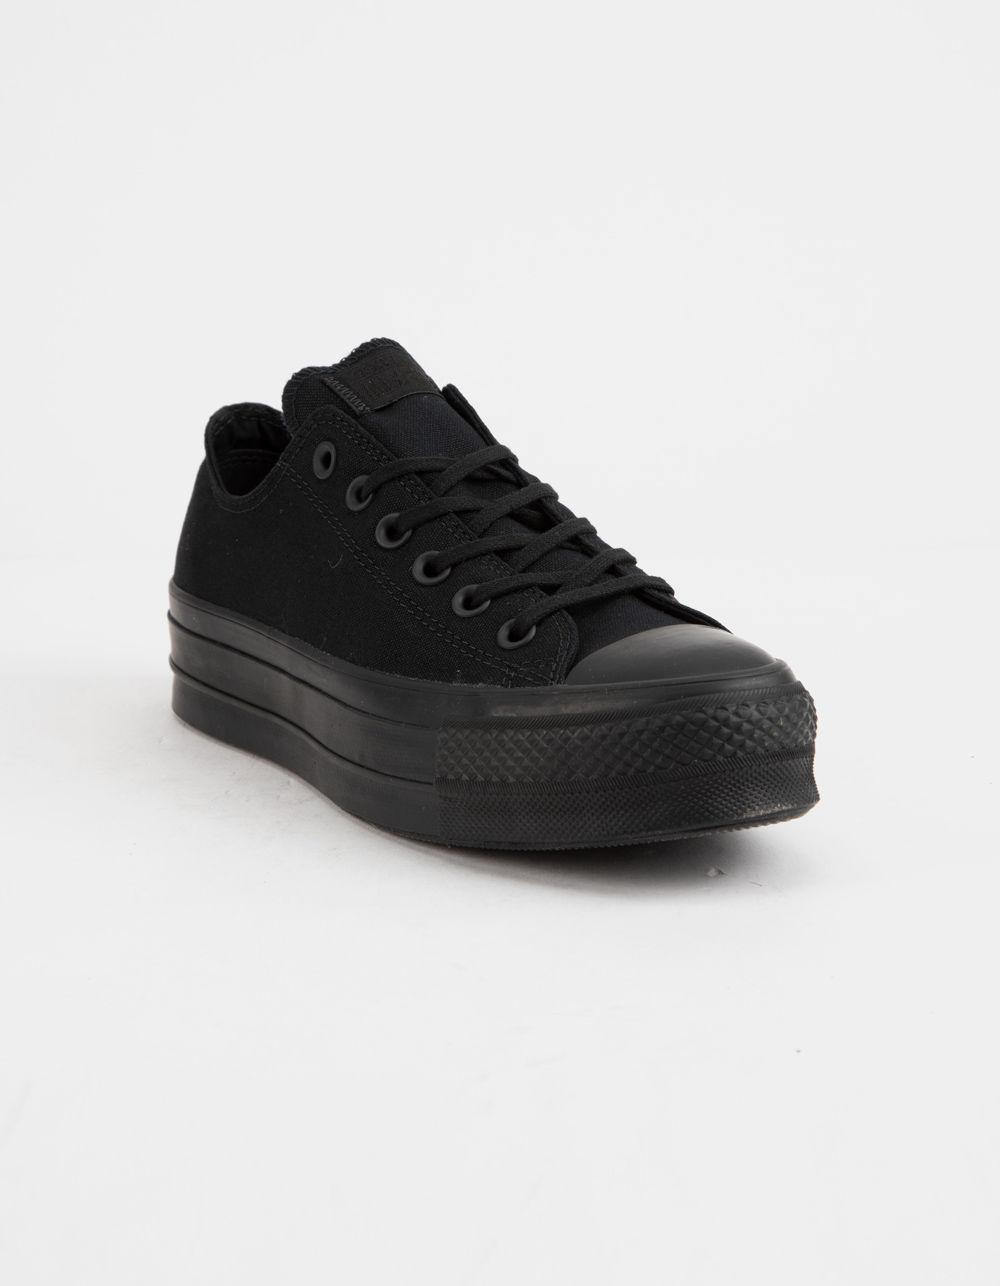 631c0e5fc99a Lyst - Converse Chuck Taylor All Star Clean Lift Black Womens Low Top Shoes  in Black - Save 59%